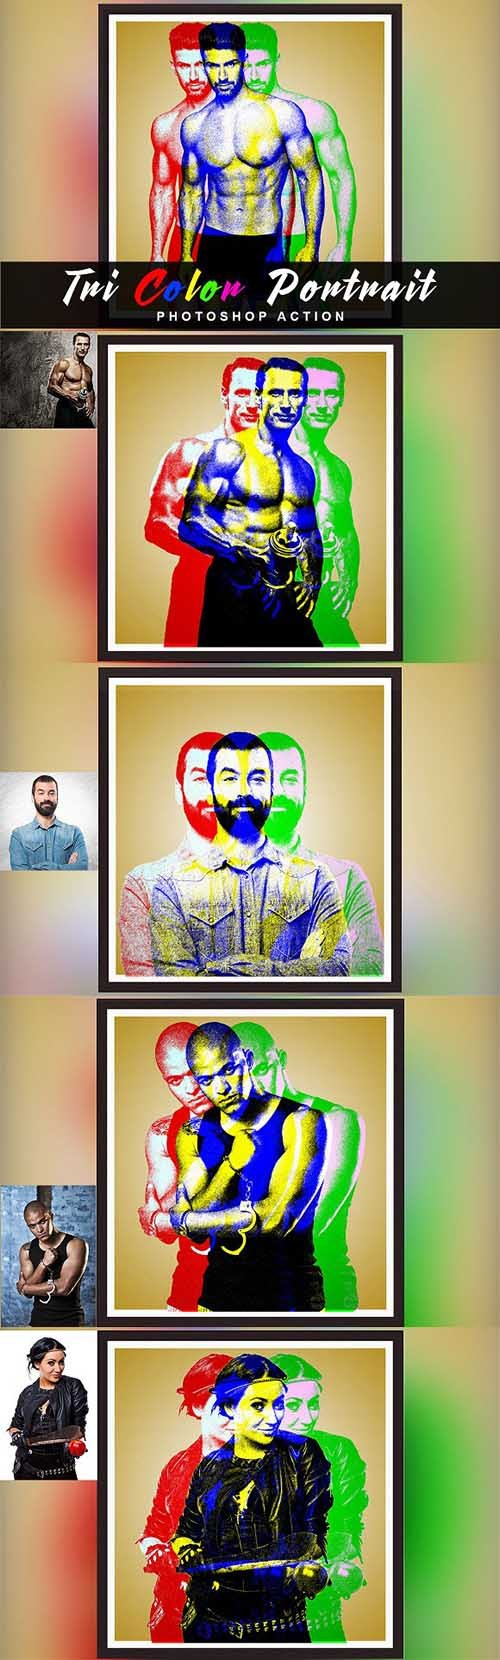 CreativeMarket - Tri Color Portrait Photoshop Action 2944703